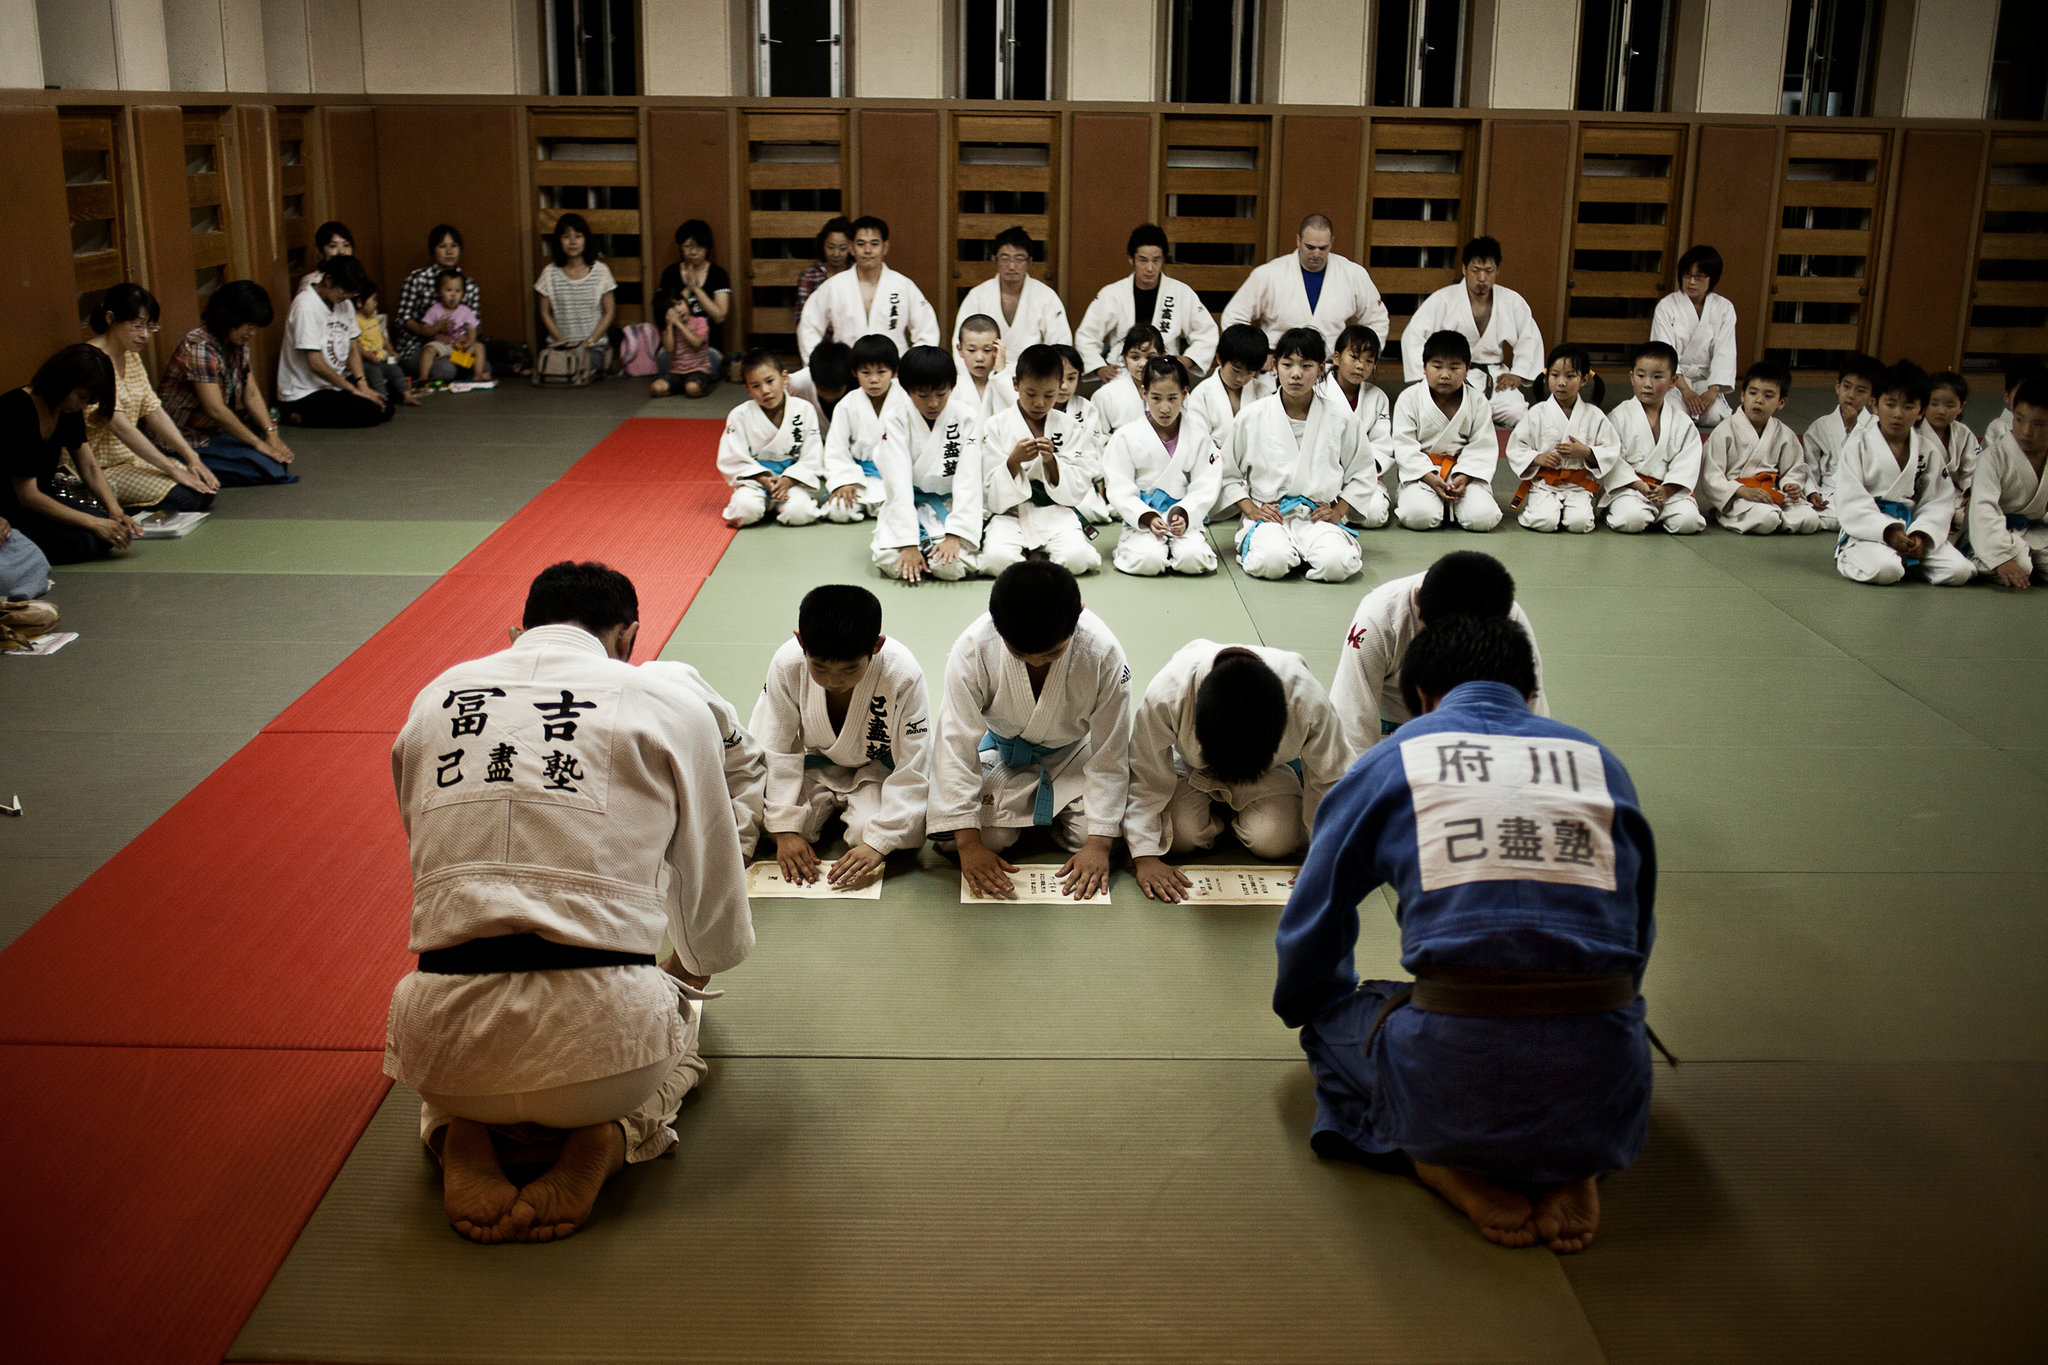 Cultural Differences Between Us And Japan Essay Contests